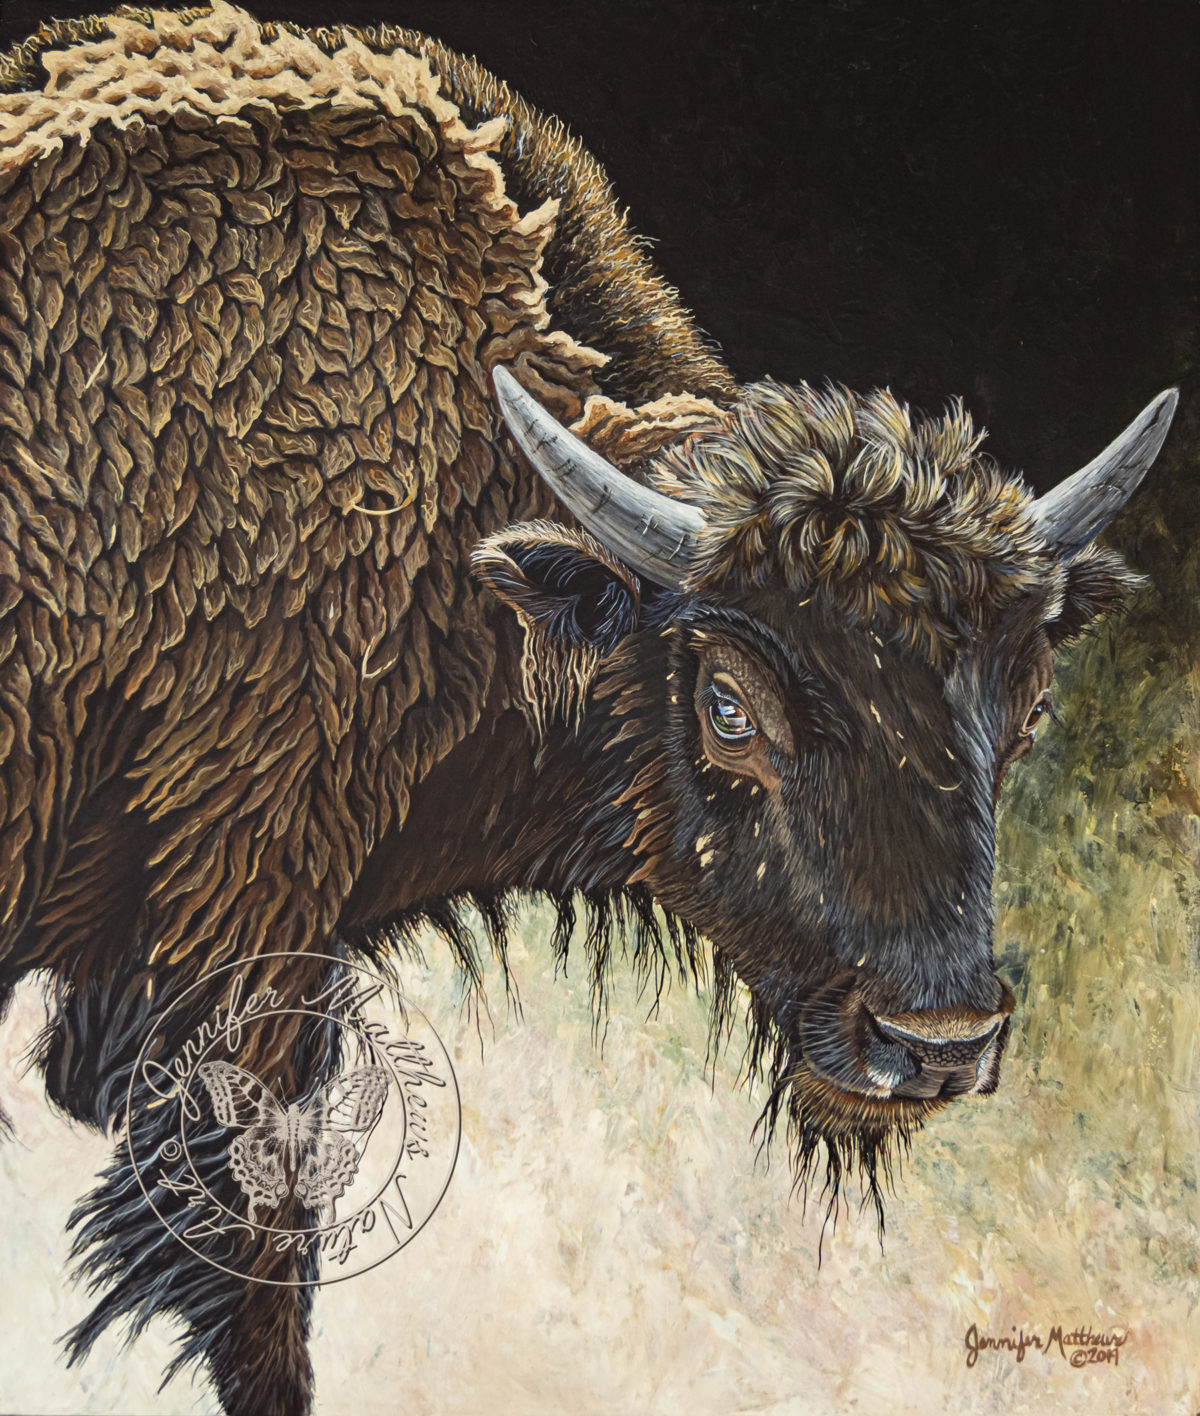 Original art, Oil Painting,acrylic painting, north dakota, wildlife, midlife art, wildlife painting, nature, nature art, nature painting, capture north dakota, north dakota legendary, north dakota be legendary, explore north dakota, ND, Bison, American Bison, Bison Bull, Buffalo, young bison, Theodore Roosevelt National Park, TRNP